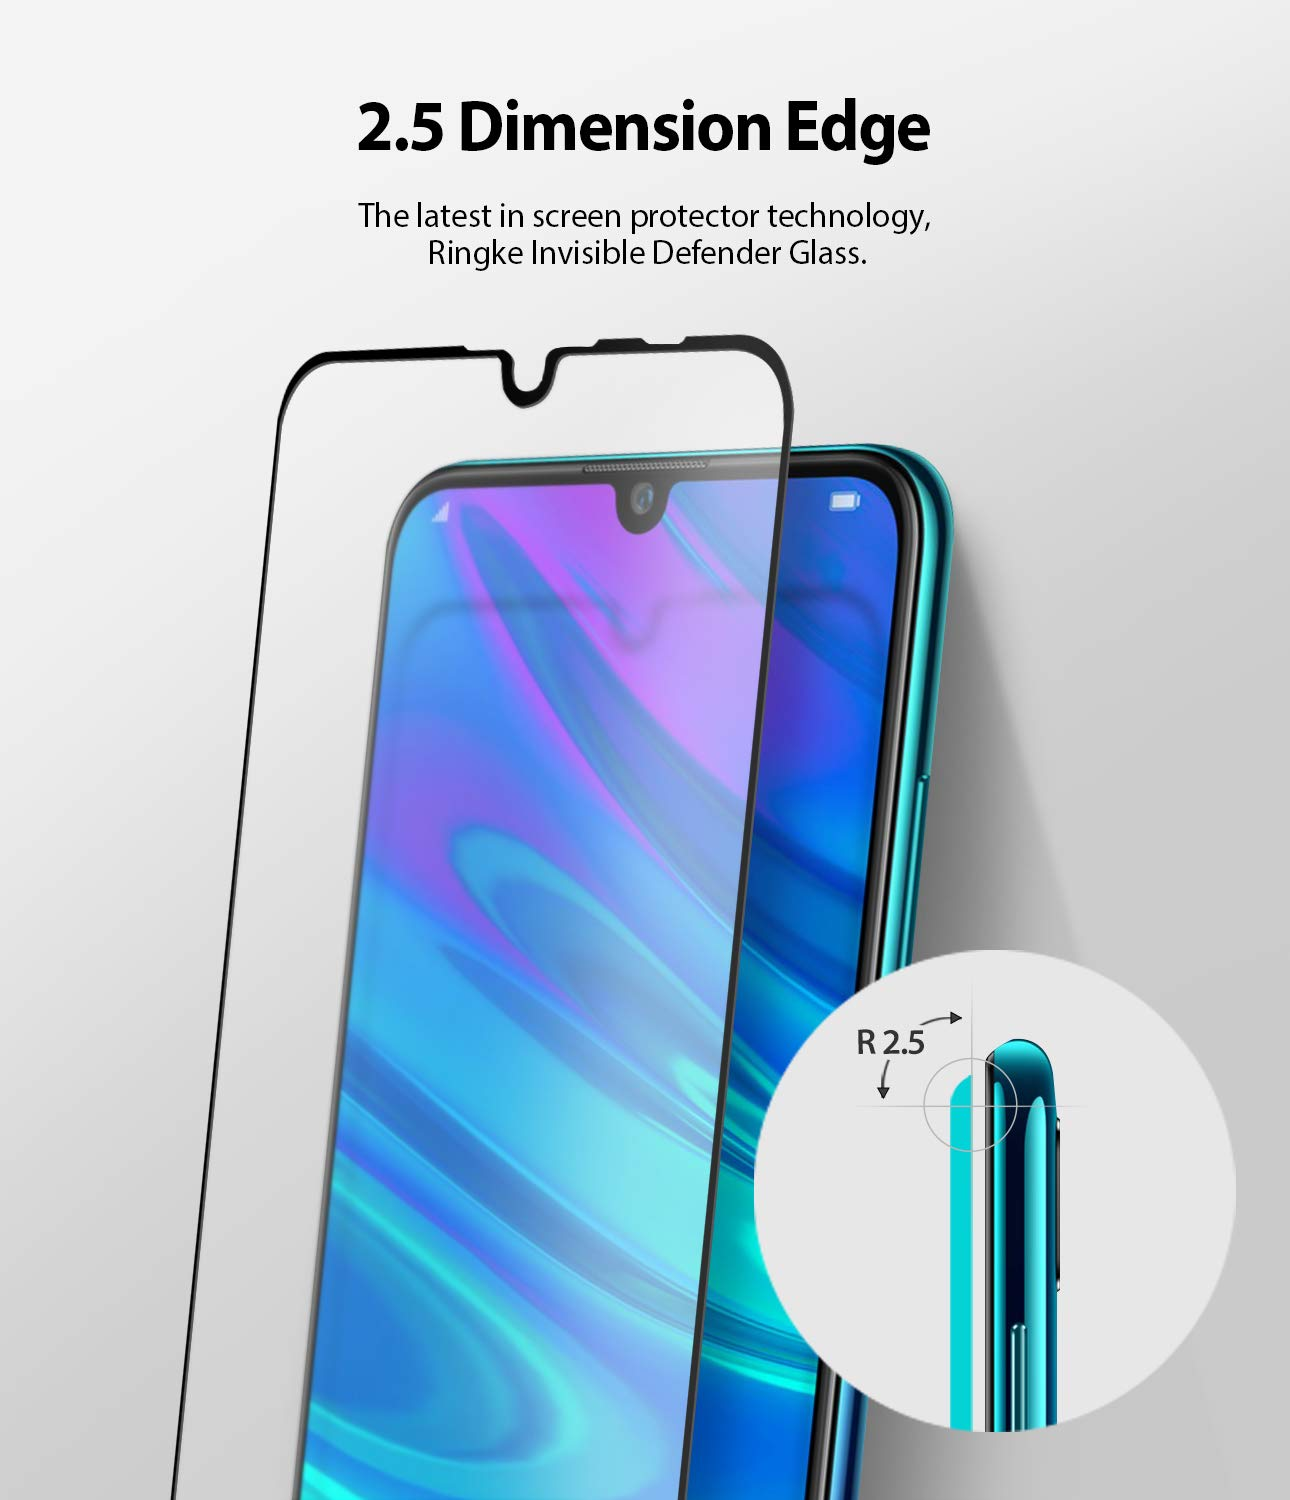 2.5 dimension edge